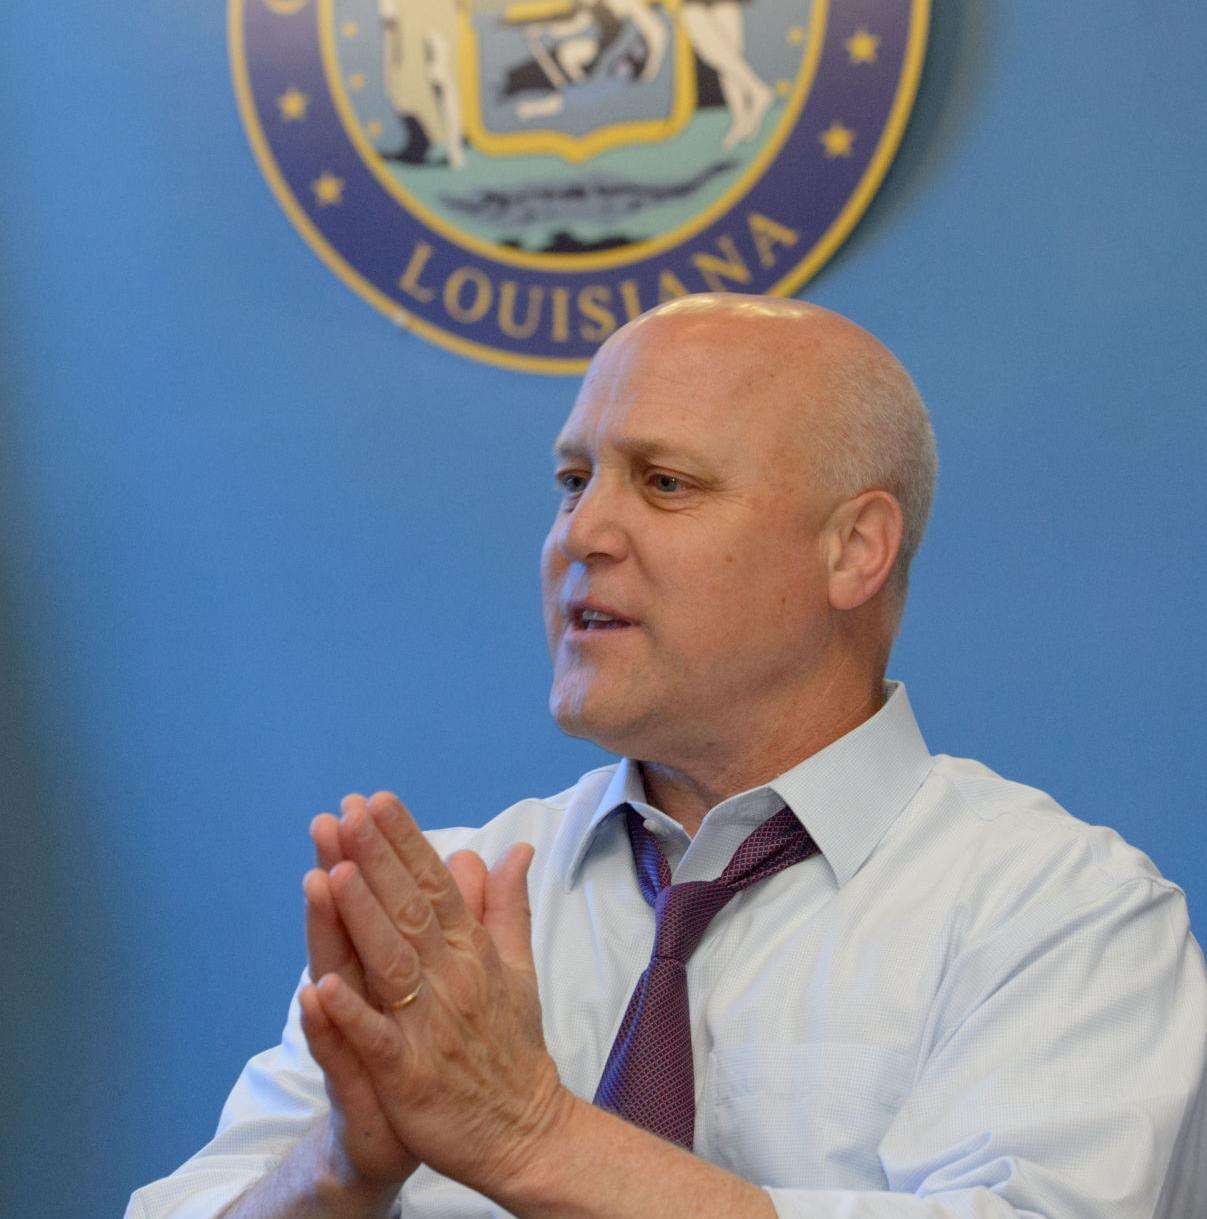 Mitch Landrieu wants an 'electable' Democrat presidential nominee; has he seen his party lately?